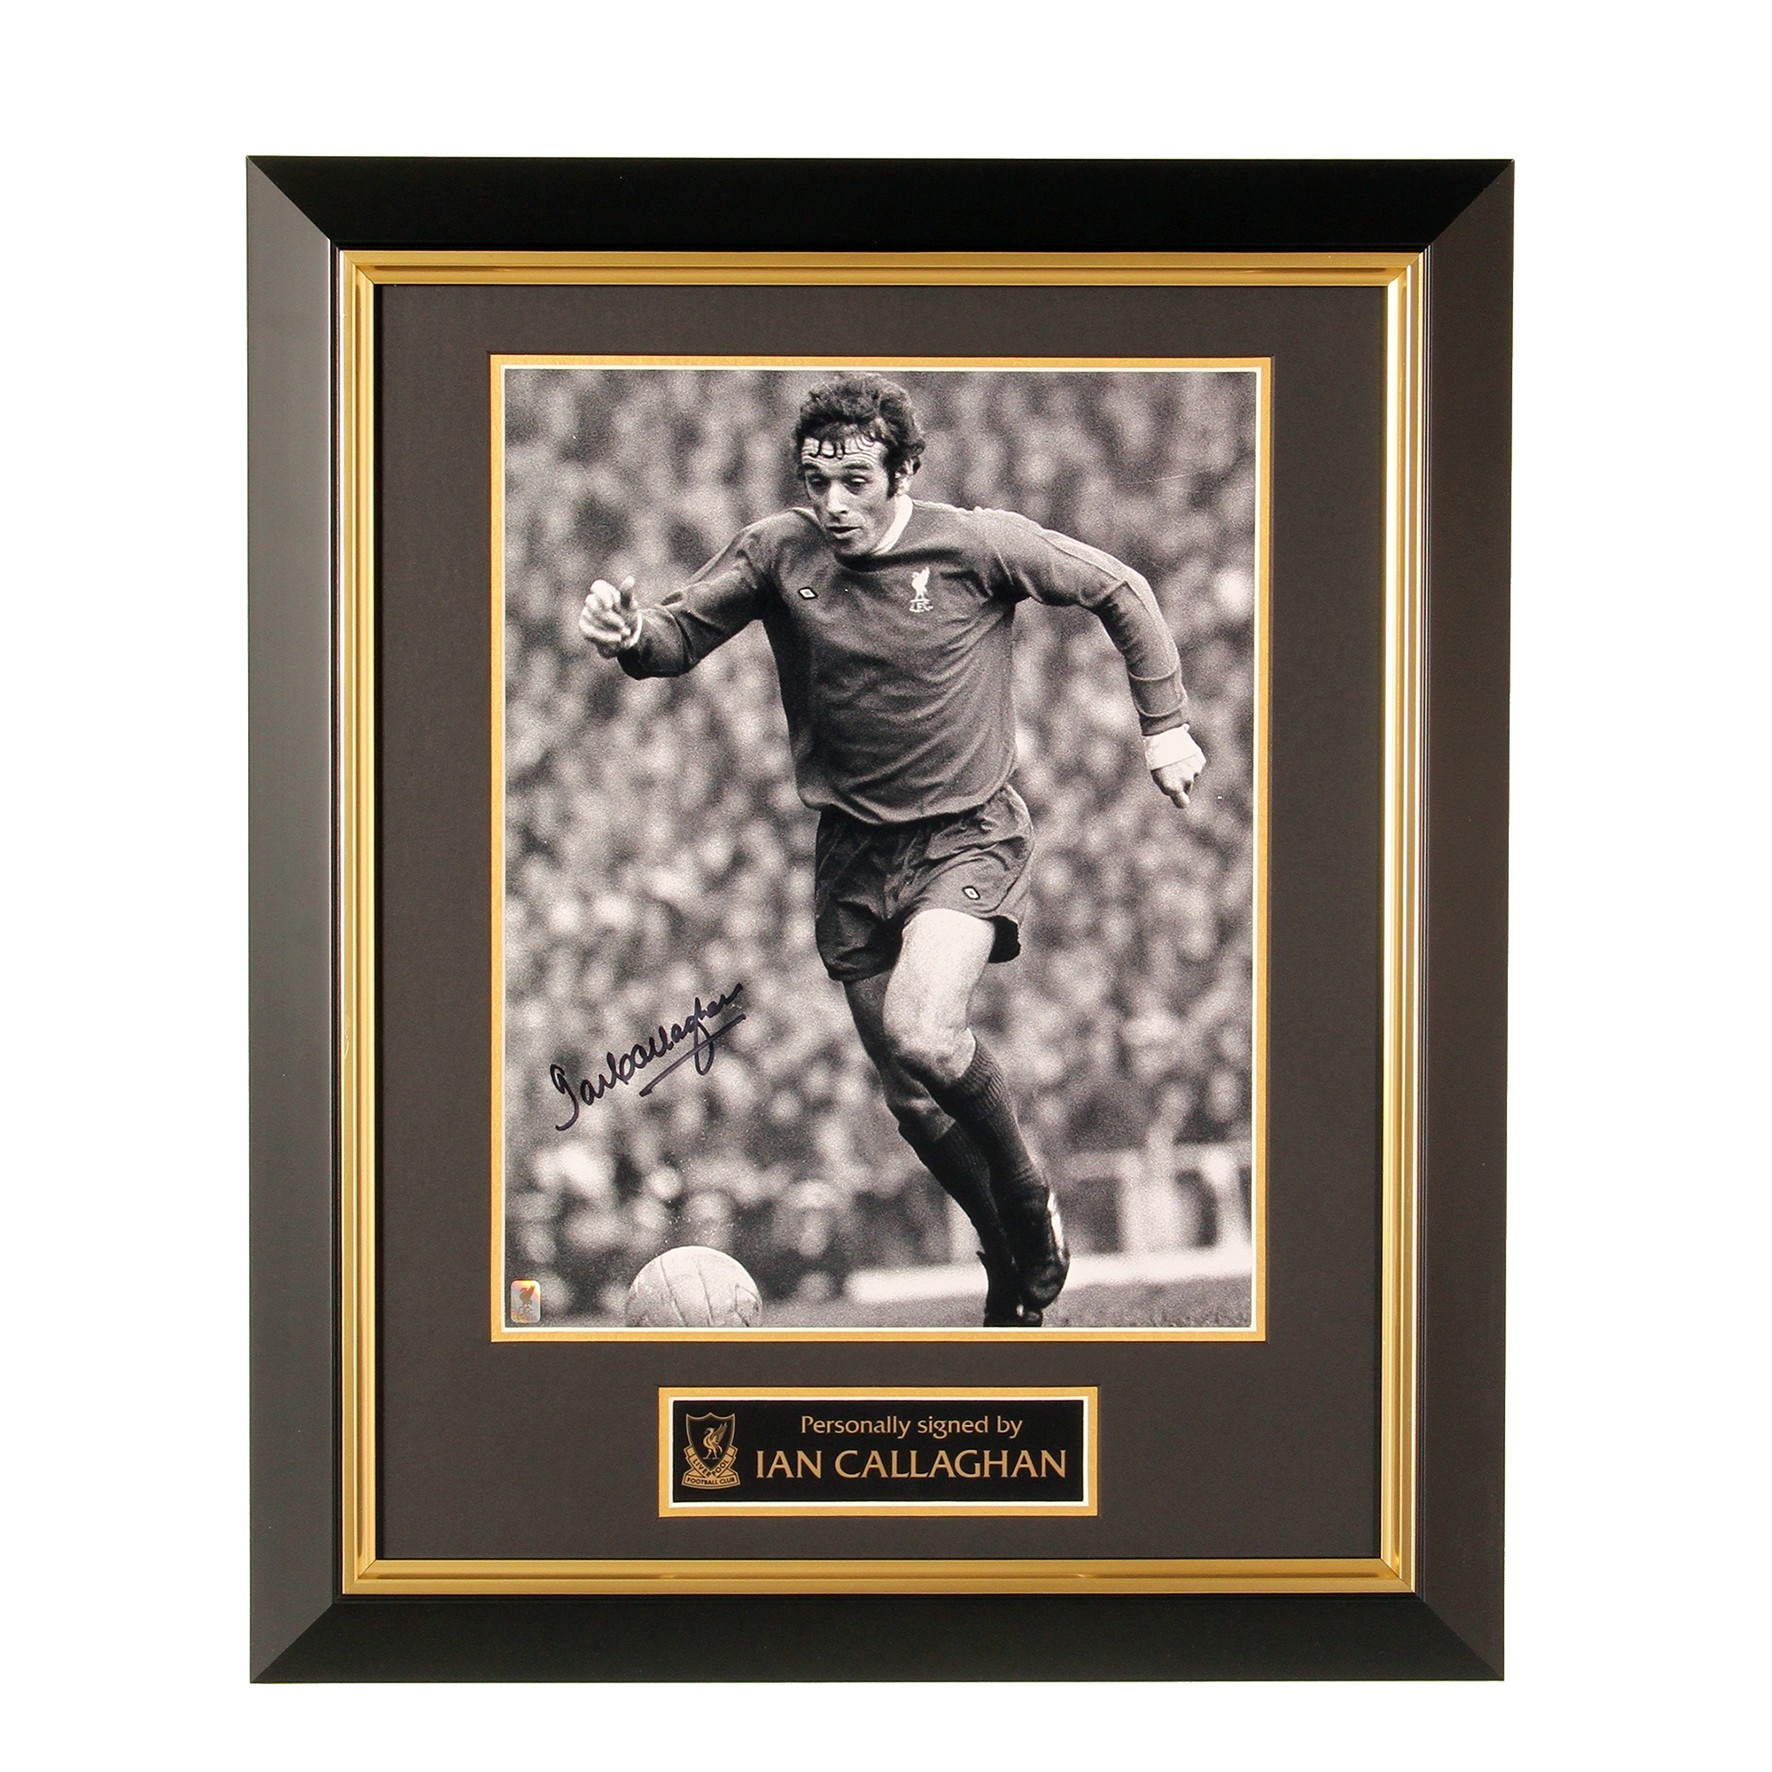 LFC Signed Ian Callaghan Framed Image